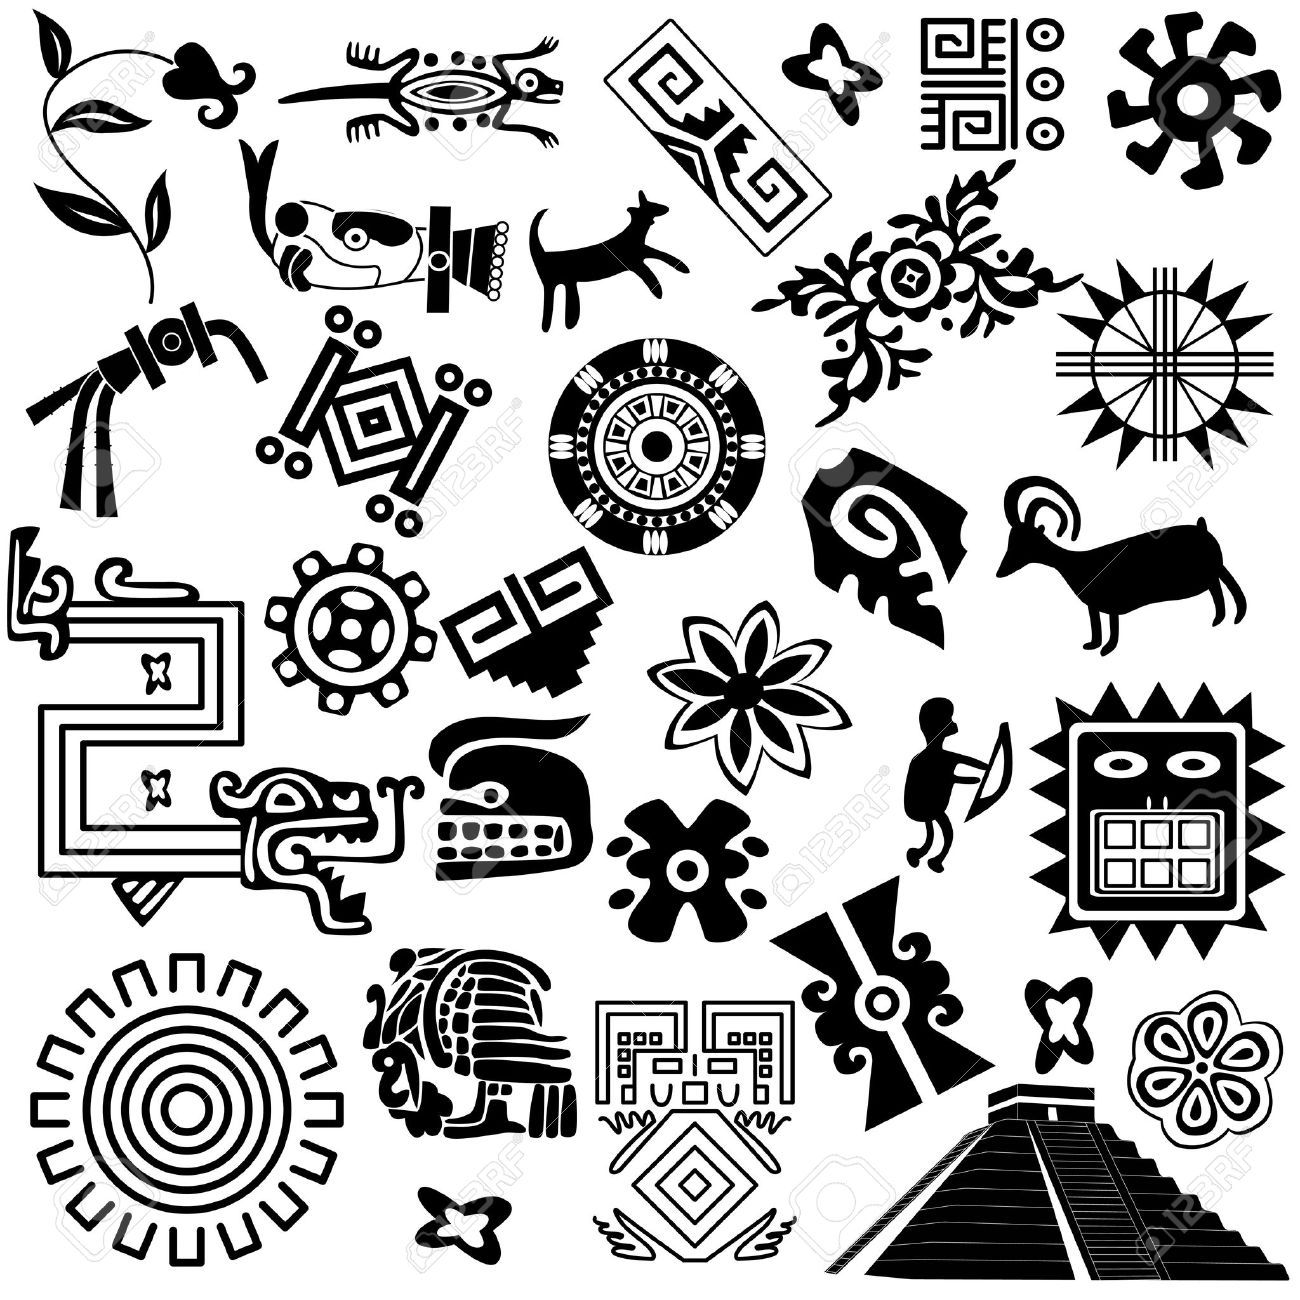 Dioses mayas imgenes de archivo vectores dioses mayas fotos buy ancient american design elements by on graphicriver vector of ancient american design elements on white package contains eps version jpg pixels buycottarizona